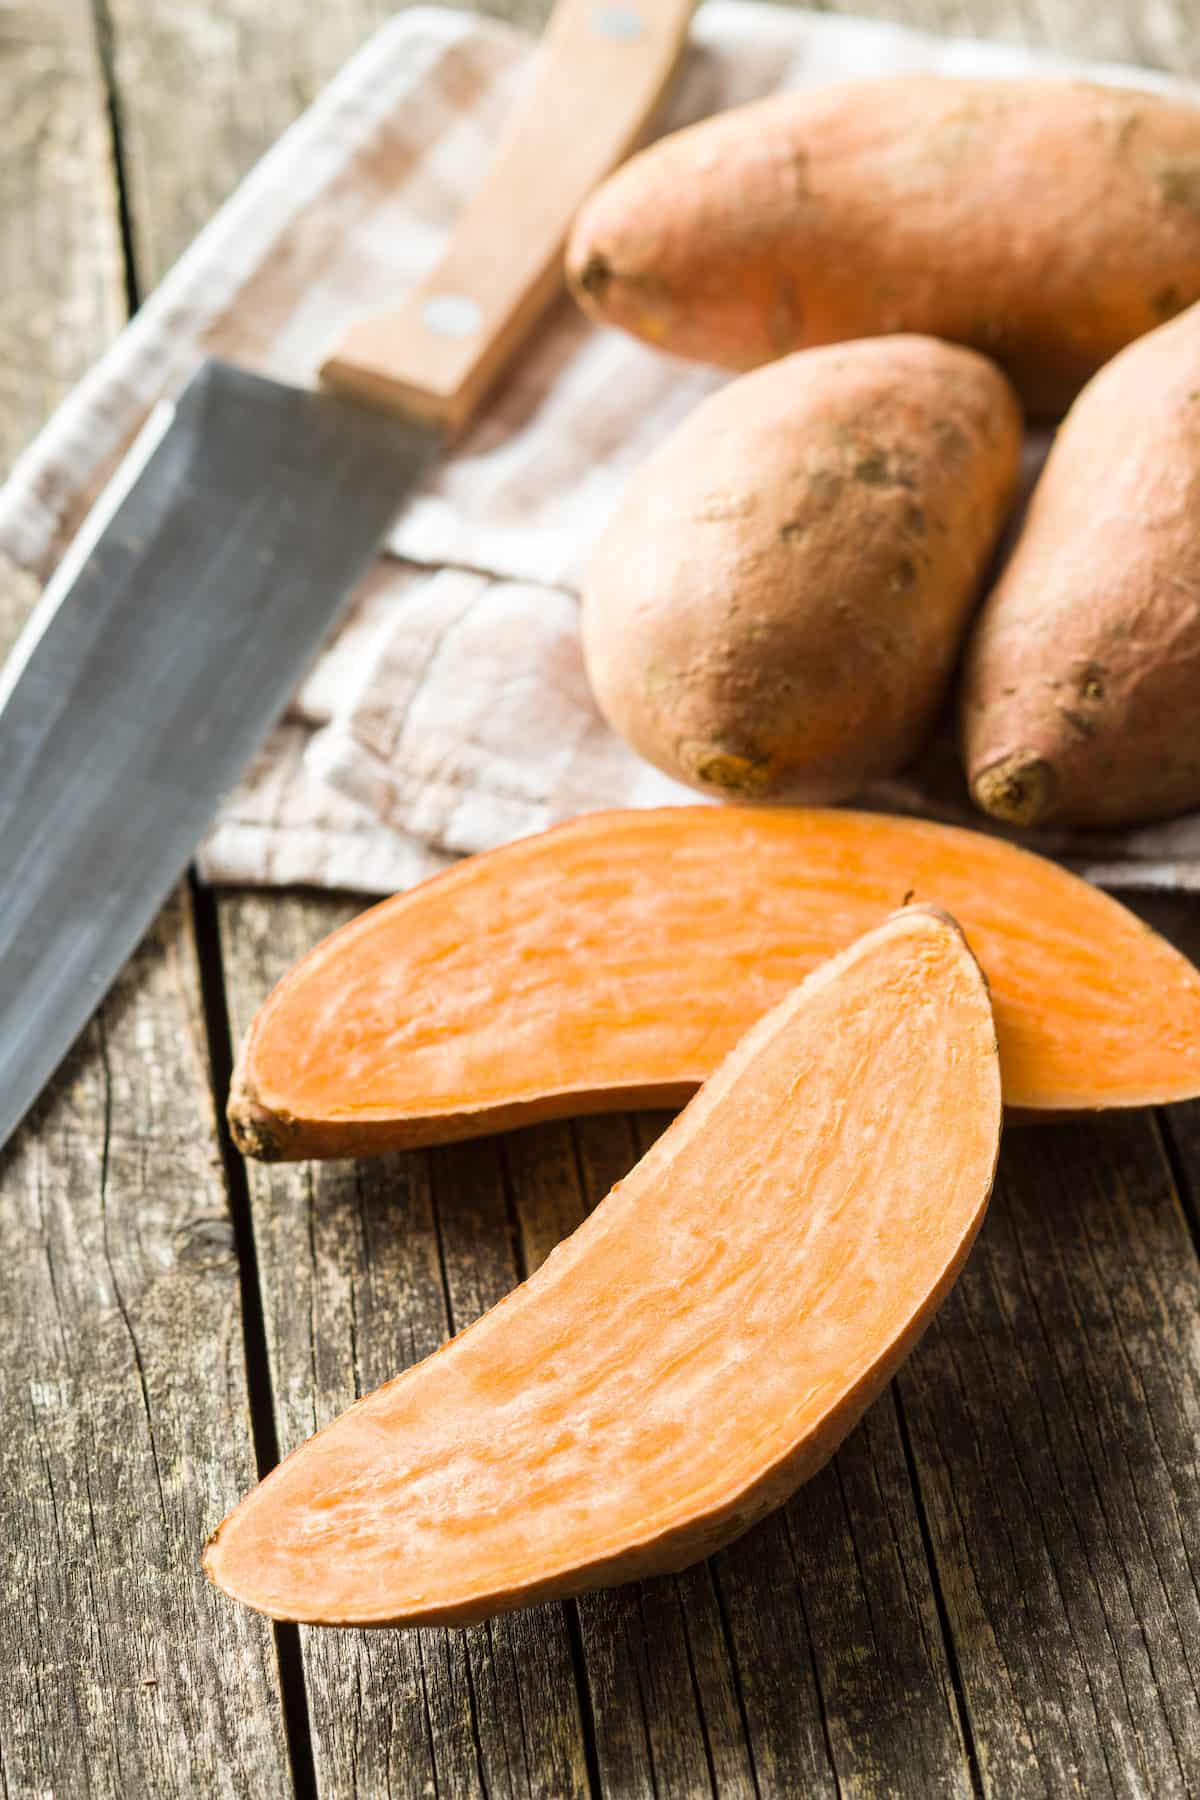 the sweet potatoes